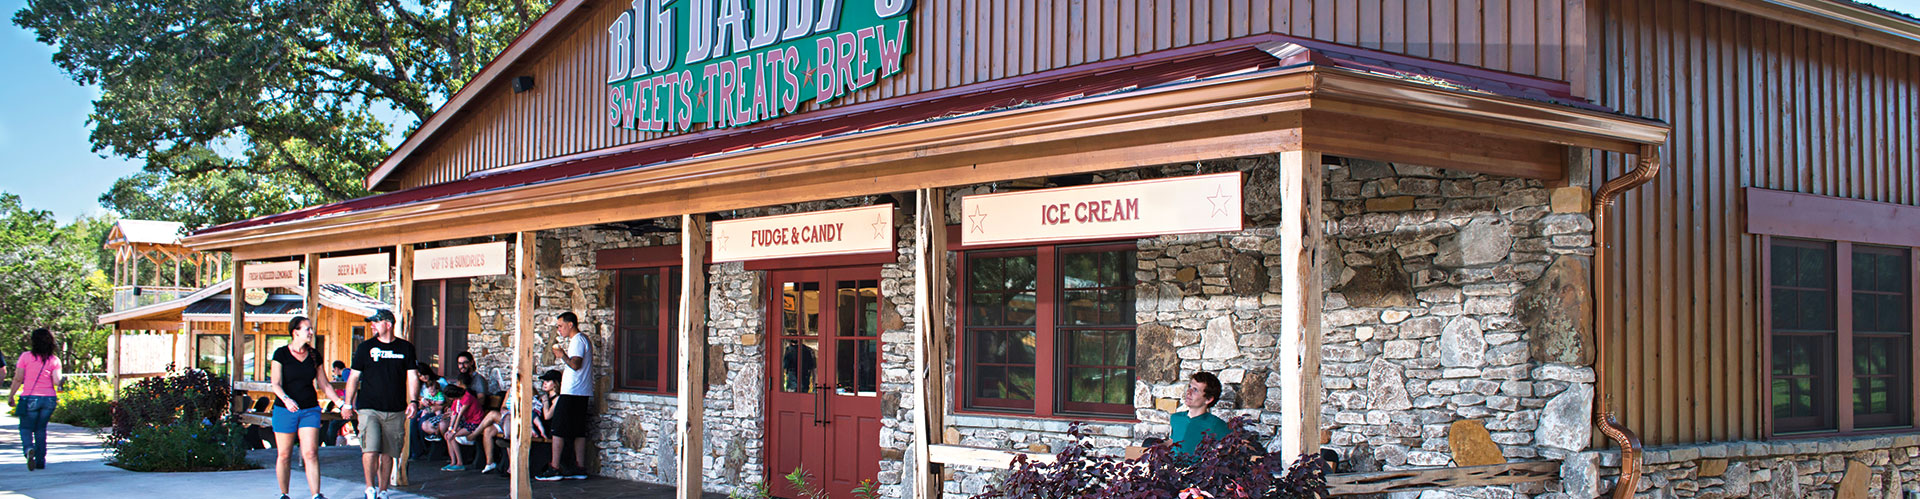 Big Daddy's Sweets Treats and Brew